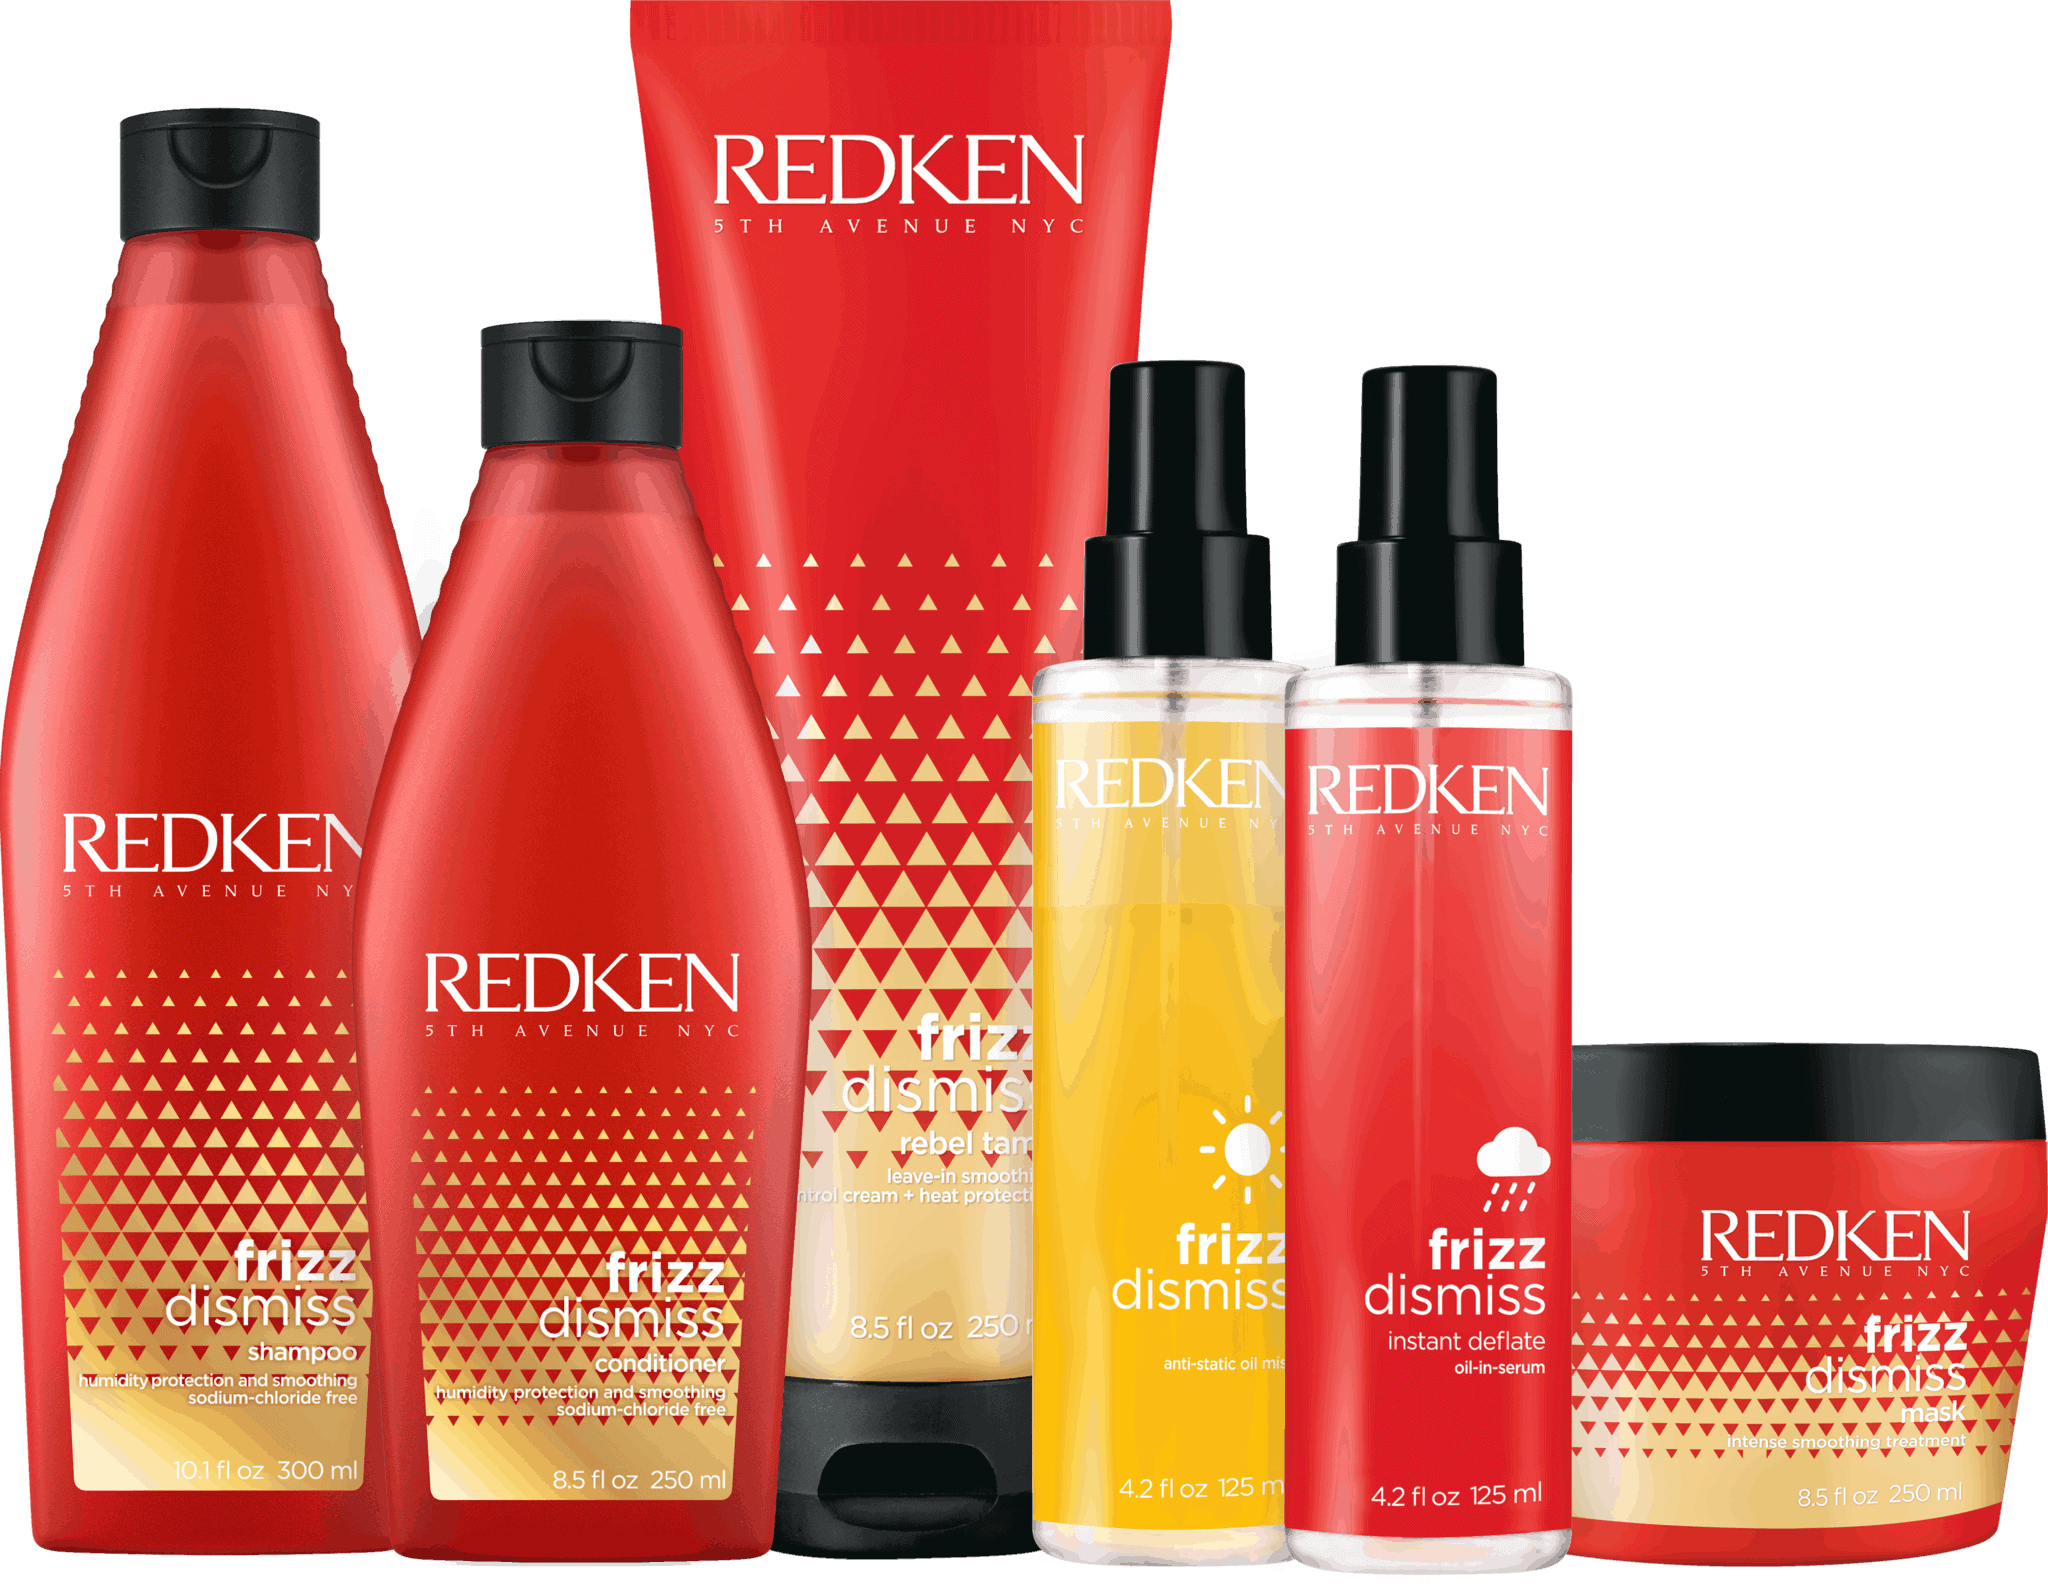 Redken's New Extreme Play Safe 450